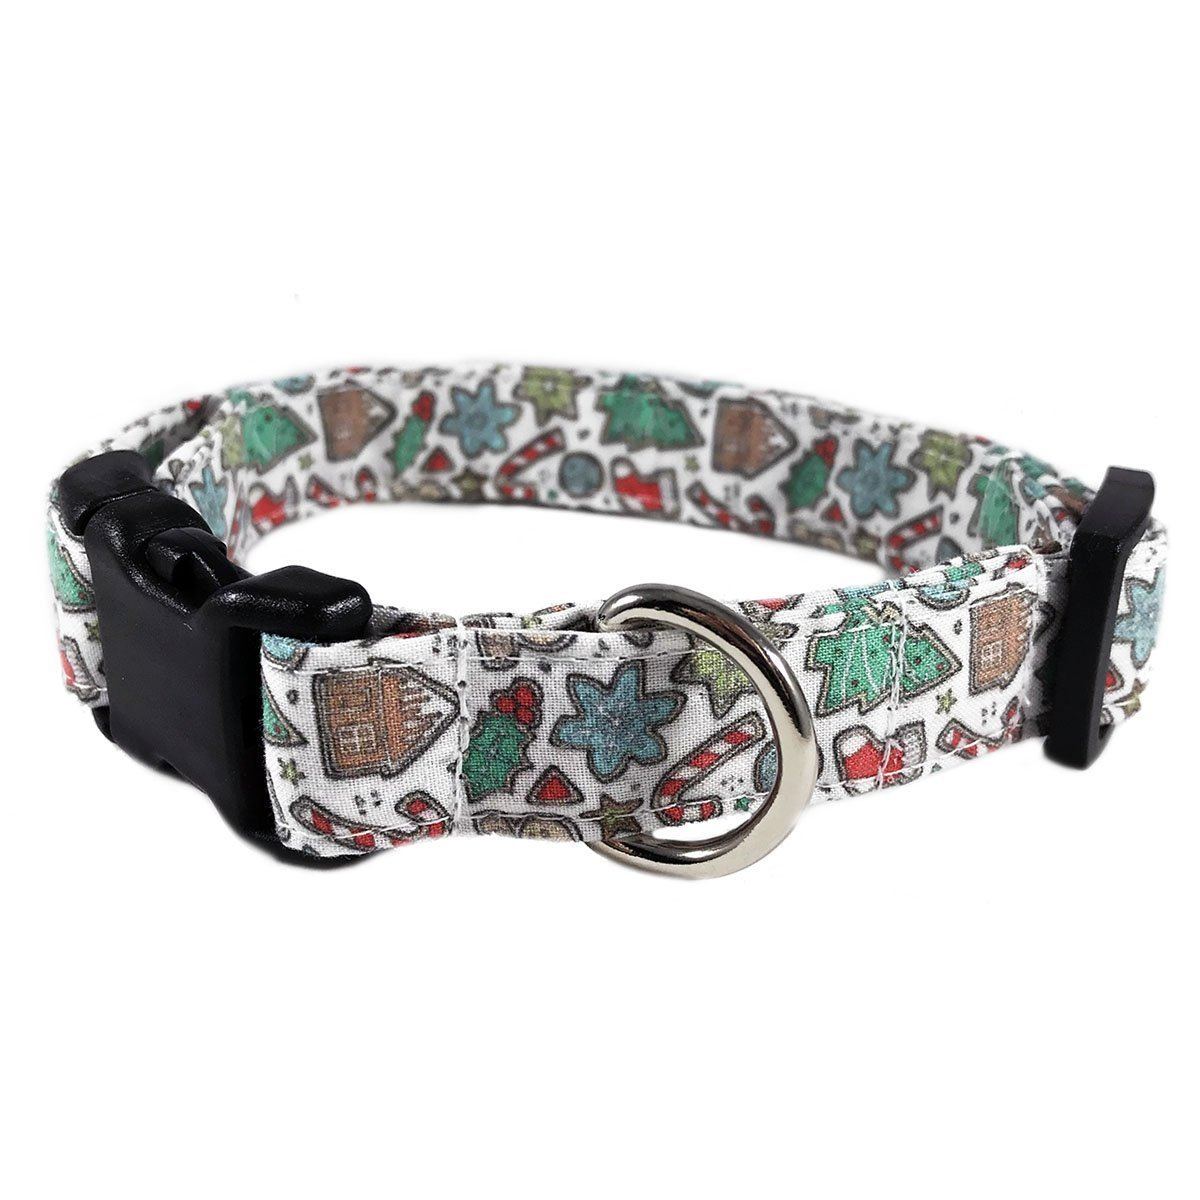 Christmas Cookies Dog Collar/Cat Collar for Pets Size Medium 3/4' Wide and 12-19' Long by Oh My Paw'd